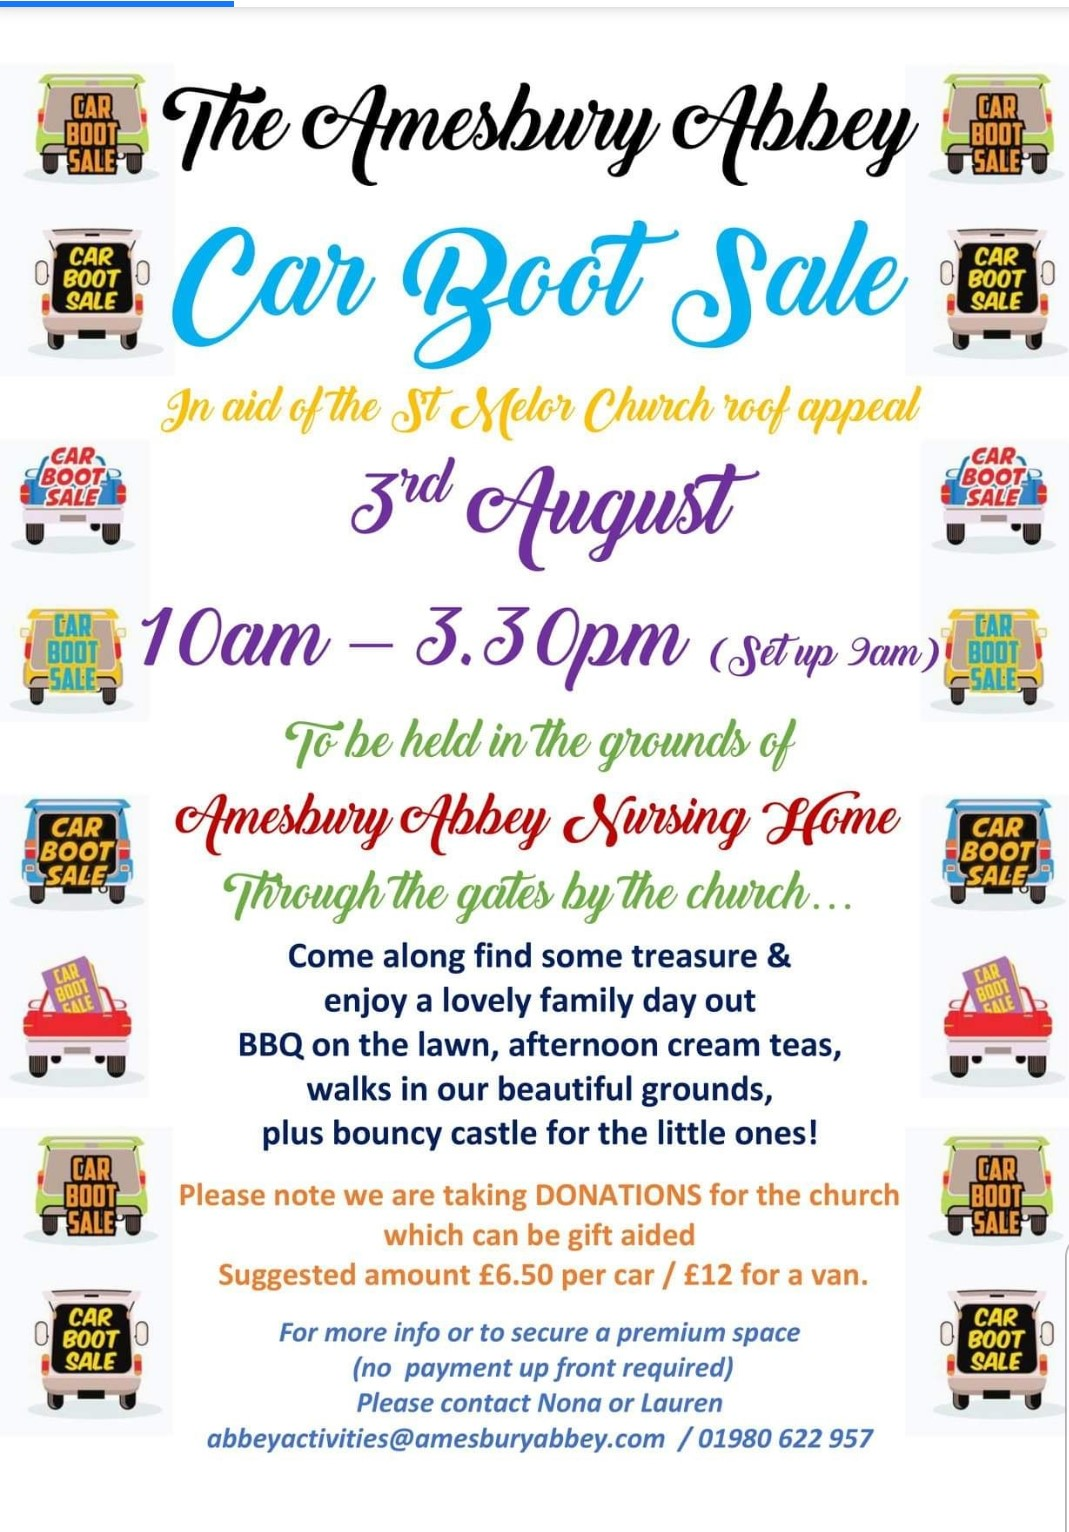 Amesbury Abbey car boot sale